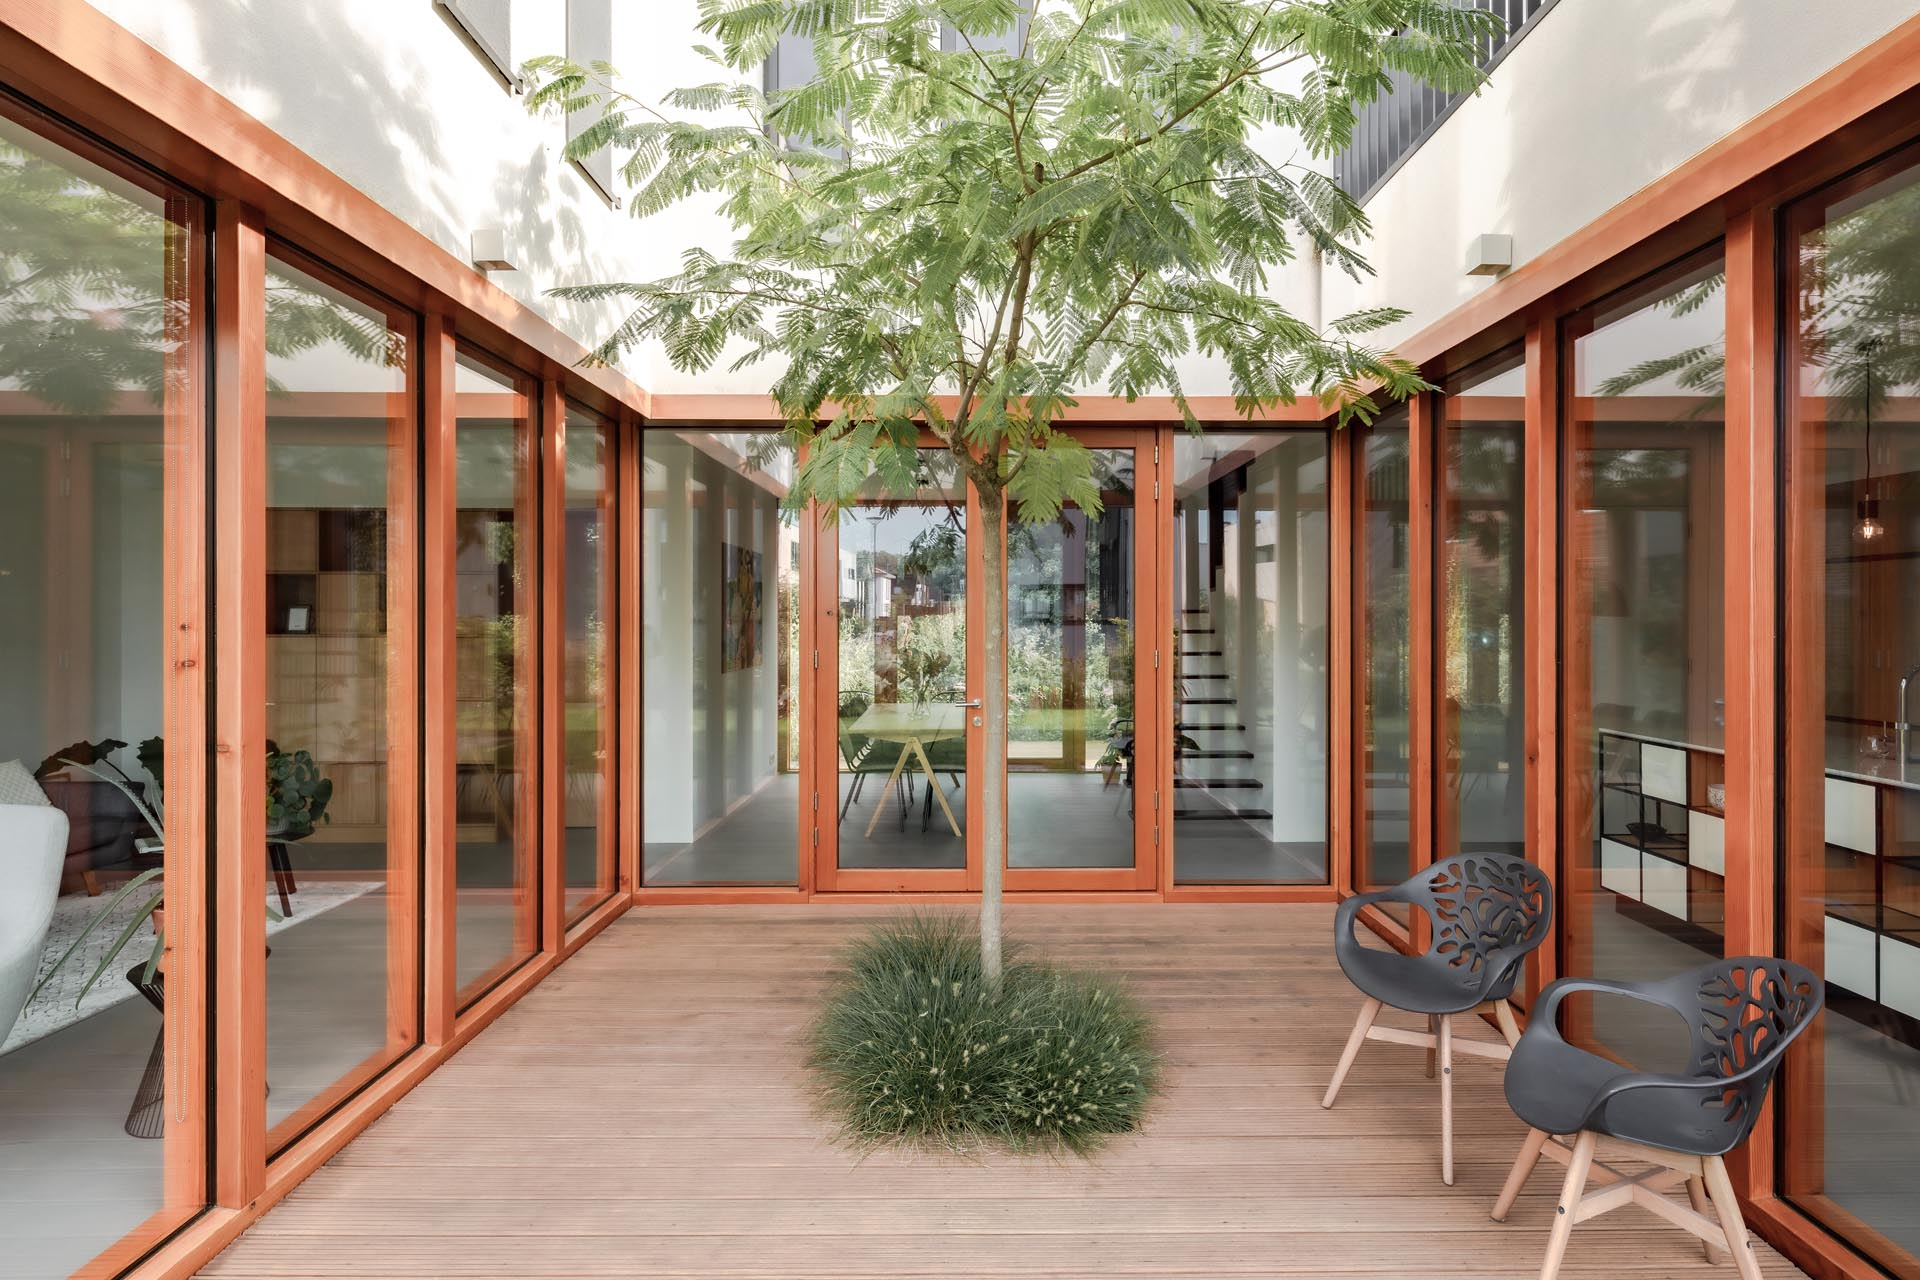 A modern home with windows and glass doors that wrap around a courtyard with a tall tree and wood deck.